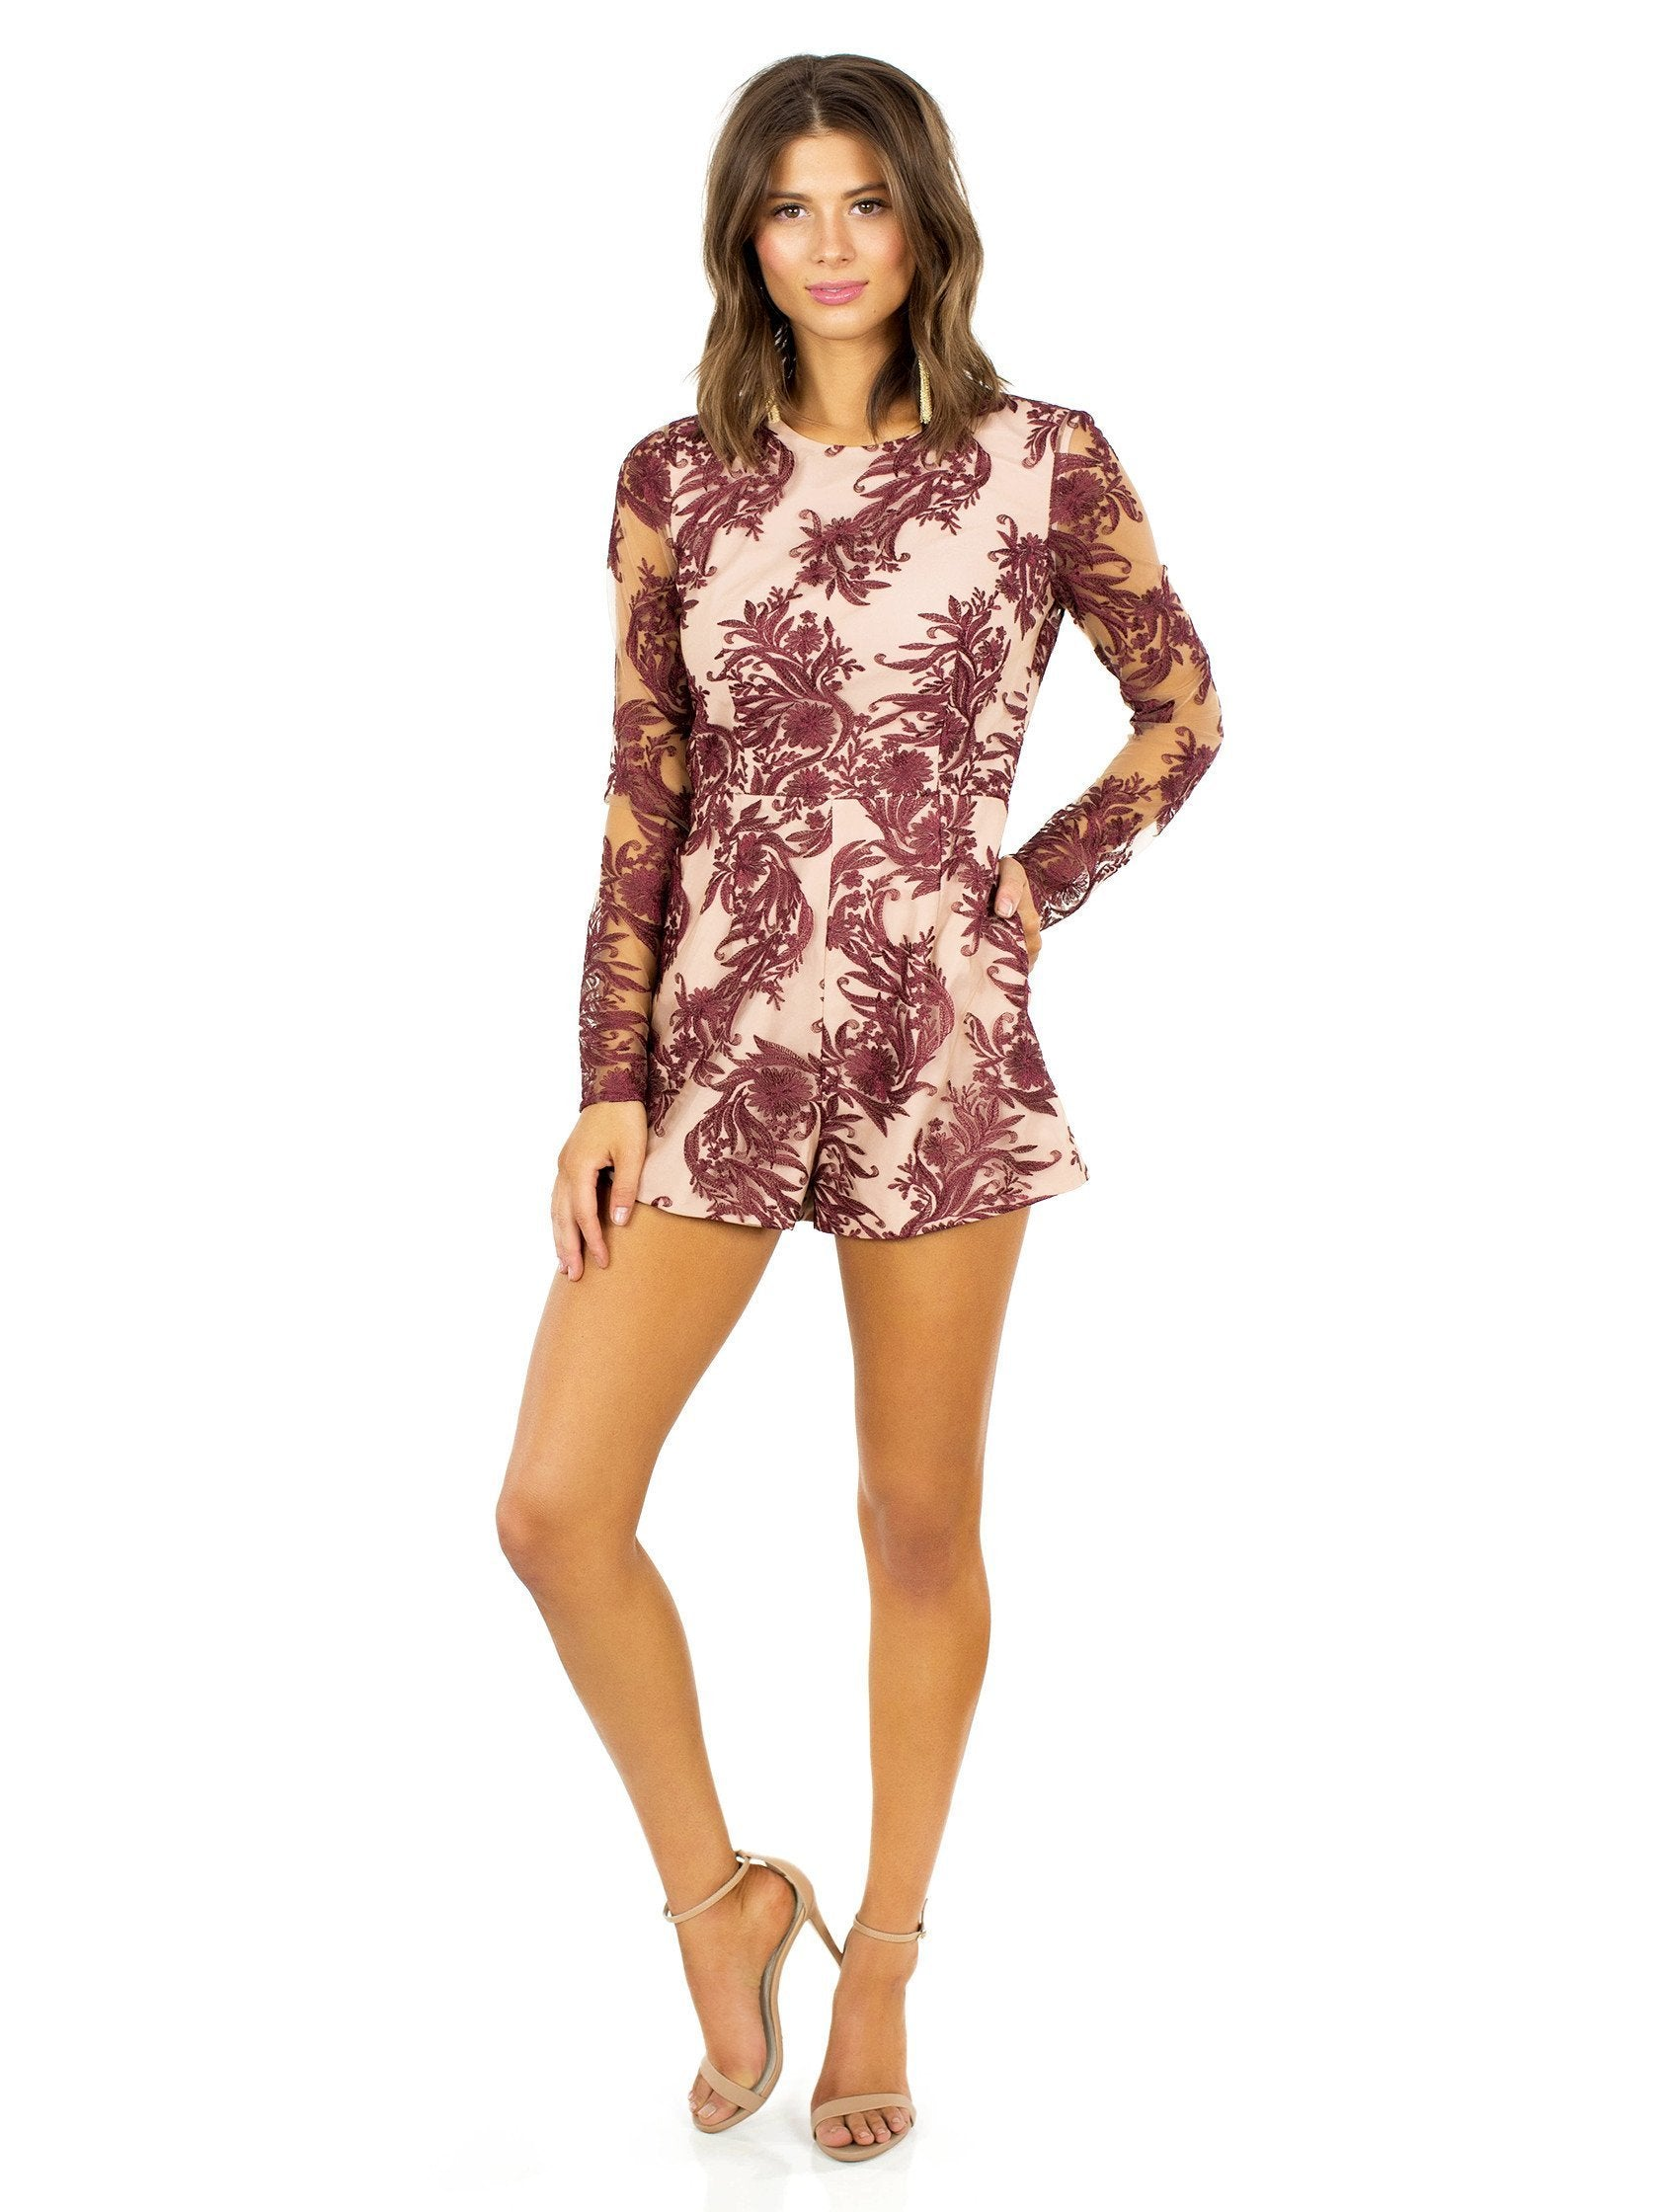 Girl outfit in a romper rental from STYLESTALKER called Mehndi Ls Romper